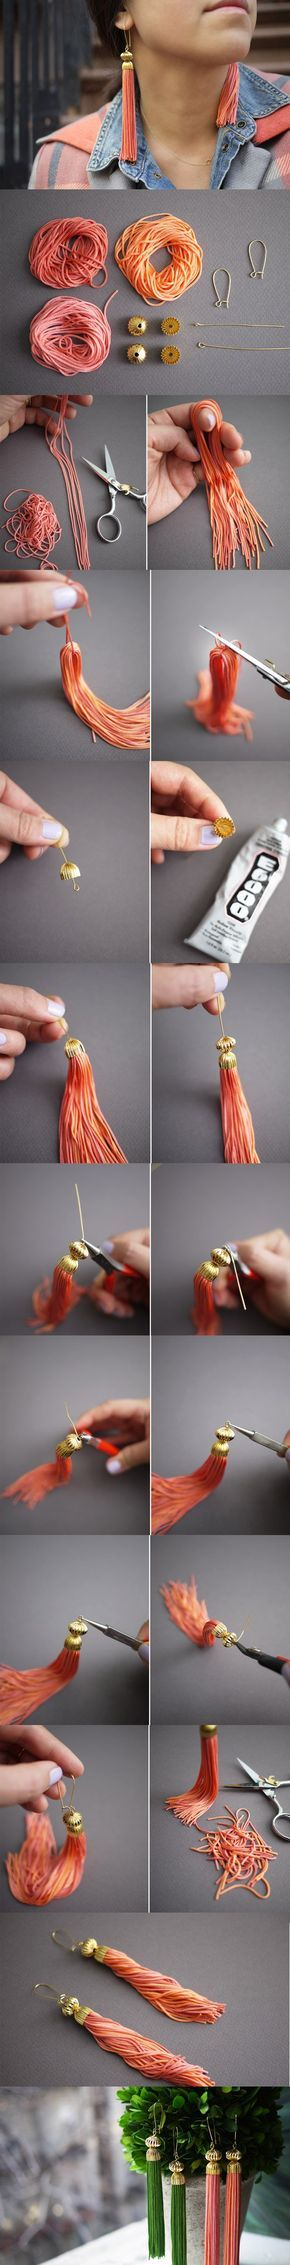 Tassel earring jewelry tutorial diy jewelry pinterest tutorials diy tassels earrings diy do it yourself tassels diy tassels diy crafts easy craft fun crafts craft ideas diy ideas craft ear rings diy earing craft jewelry solutioingenieria Image collections